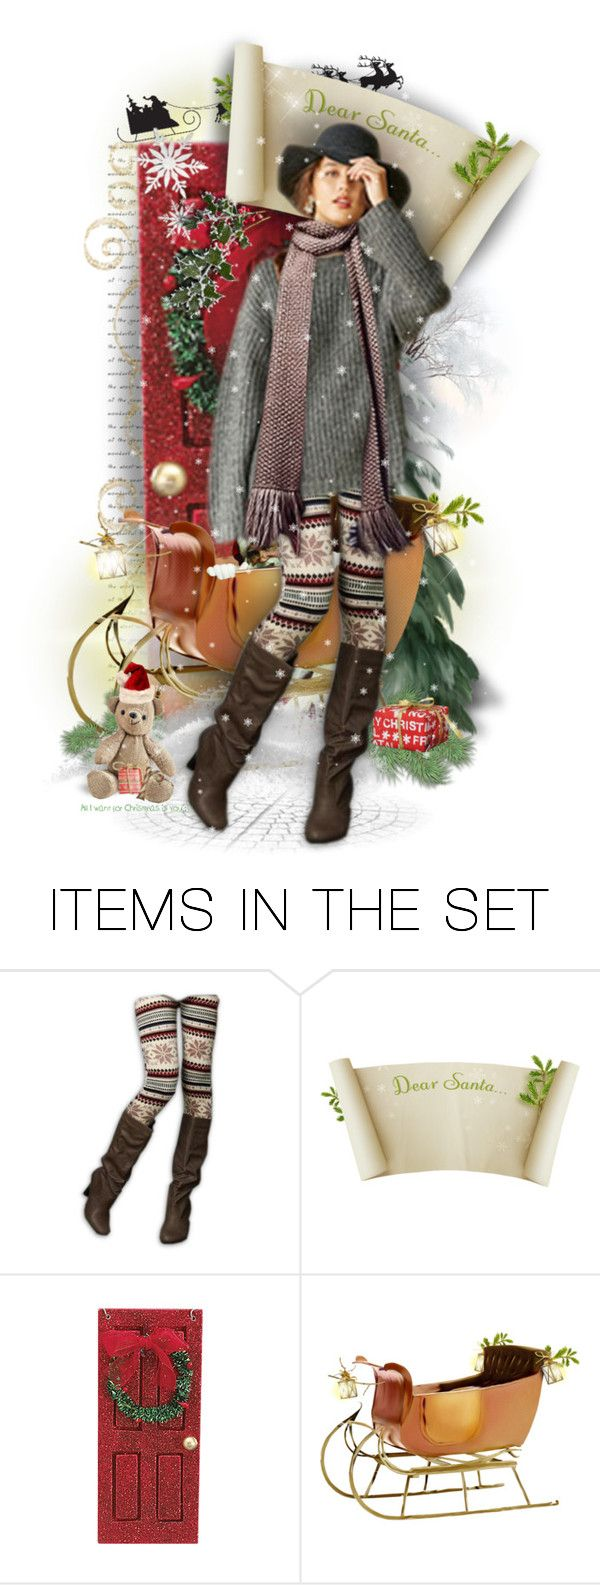 """Dear Santa . . ."" by rosie305 ❤ liked on Polyvore featuring art, artset and artdoll"